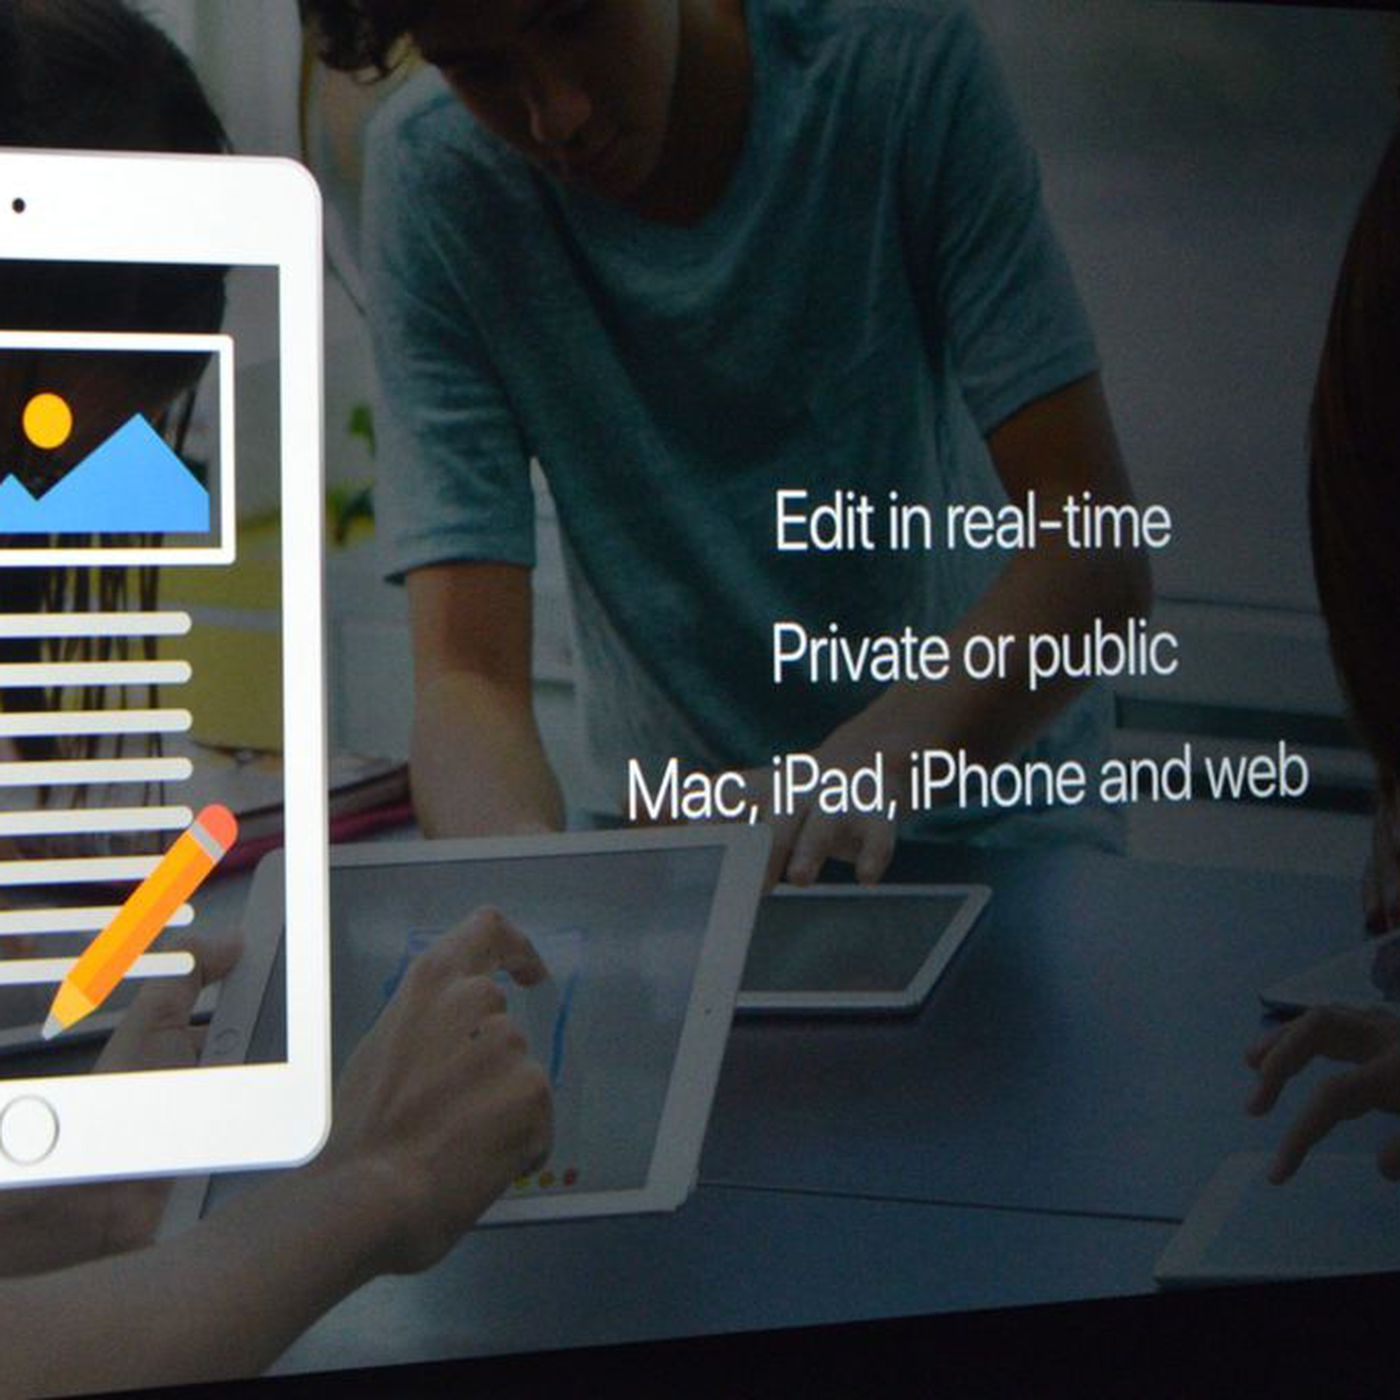 Apple unveils real-time collaboration for iWork - The Verge